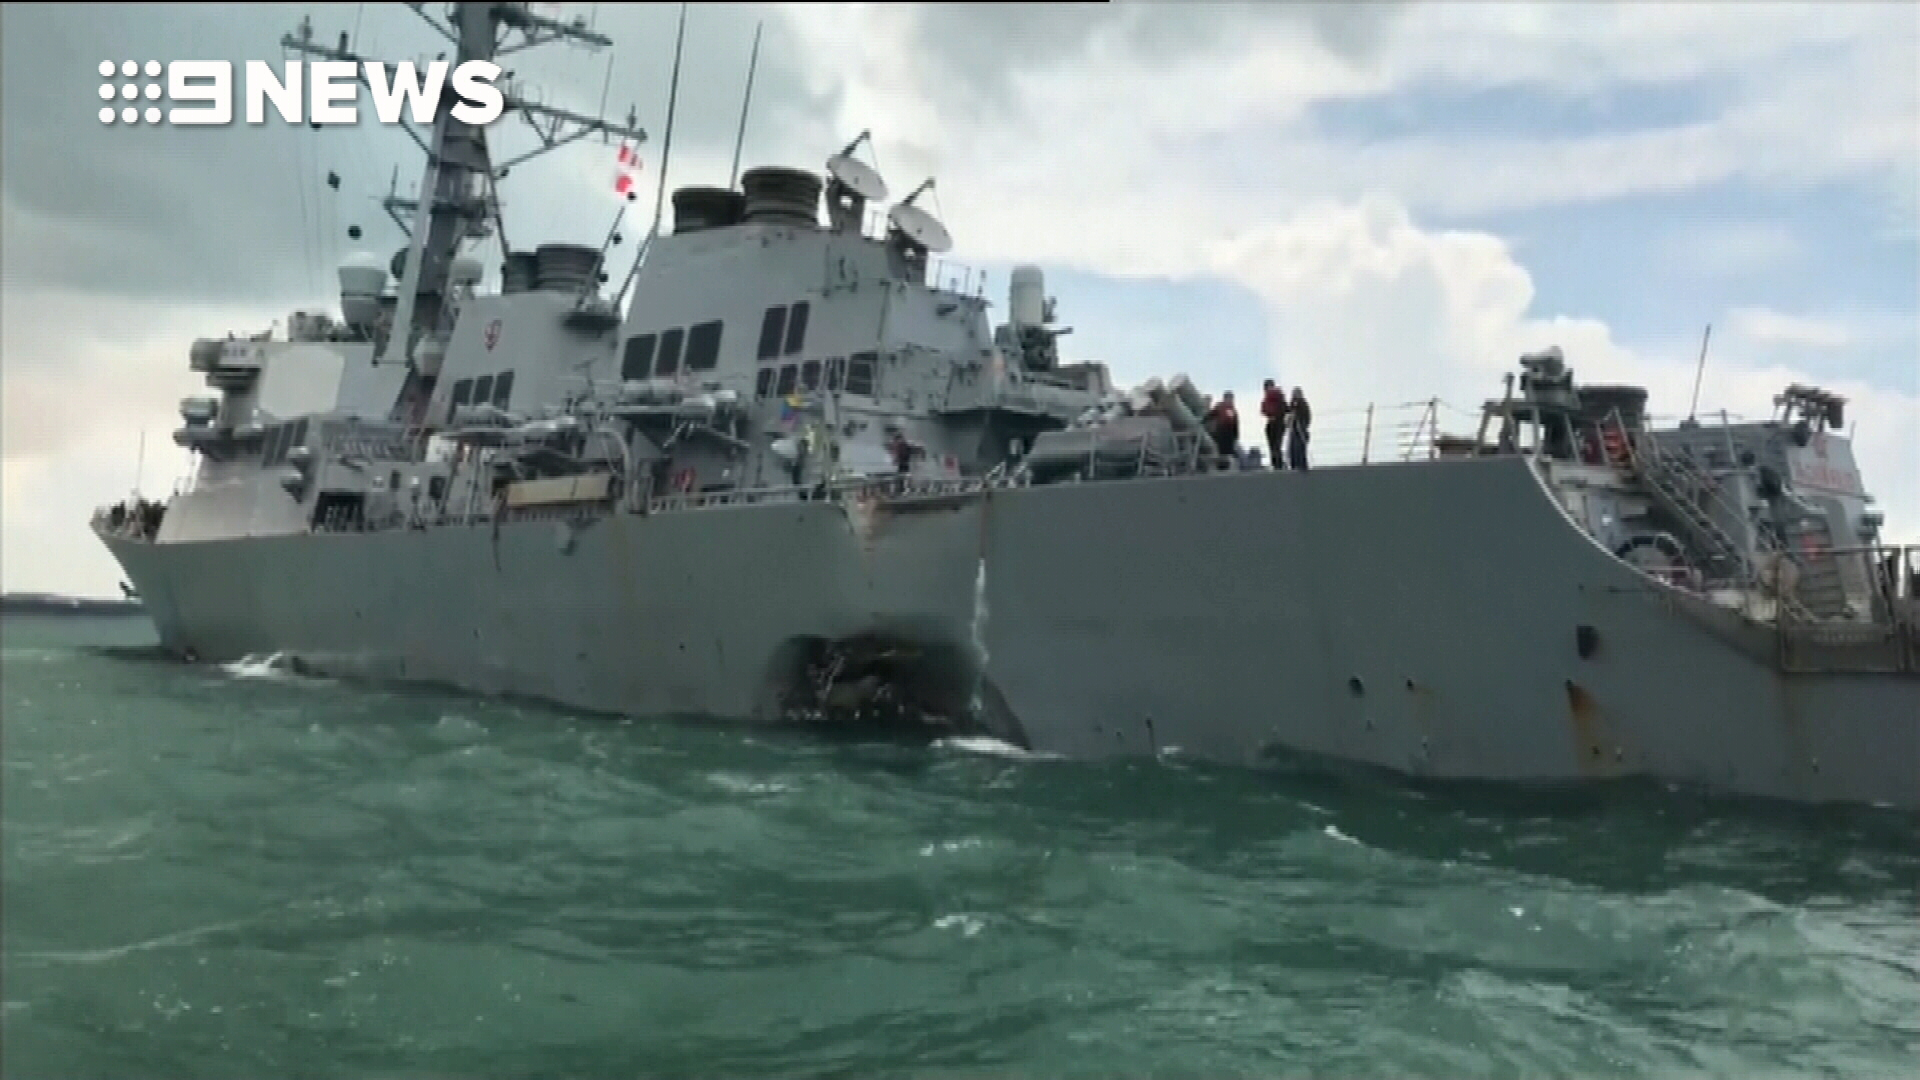 US destroyer collides with merchant ship